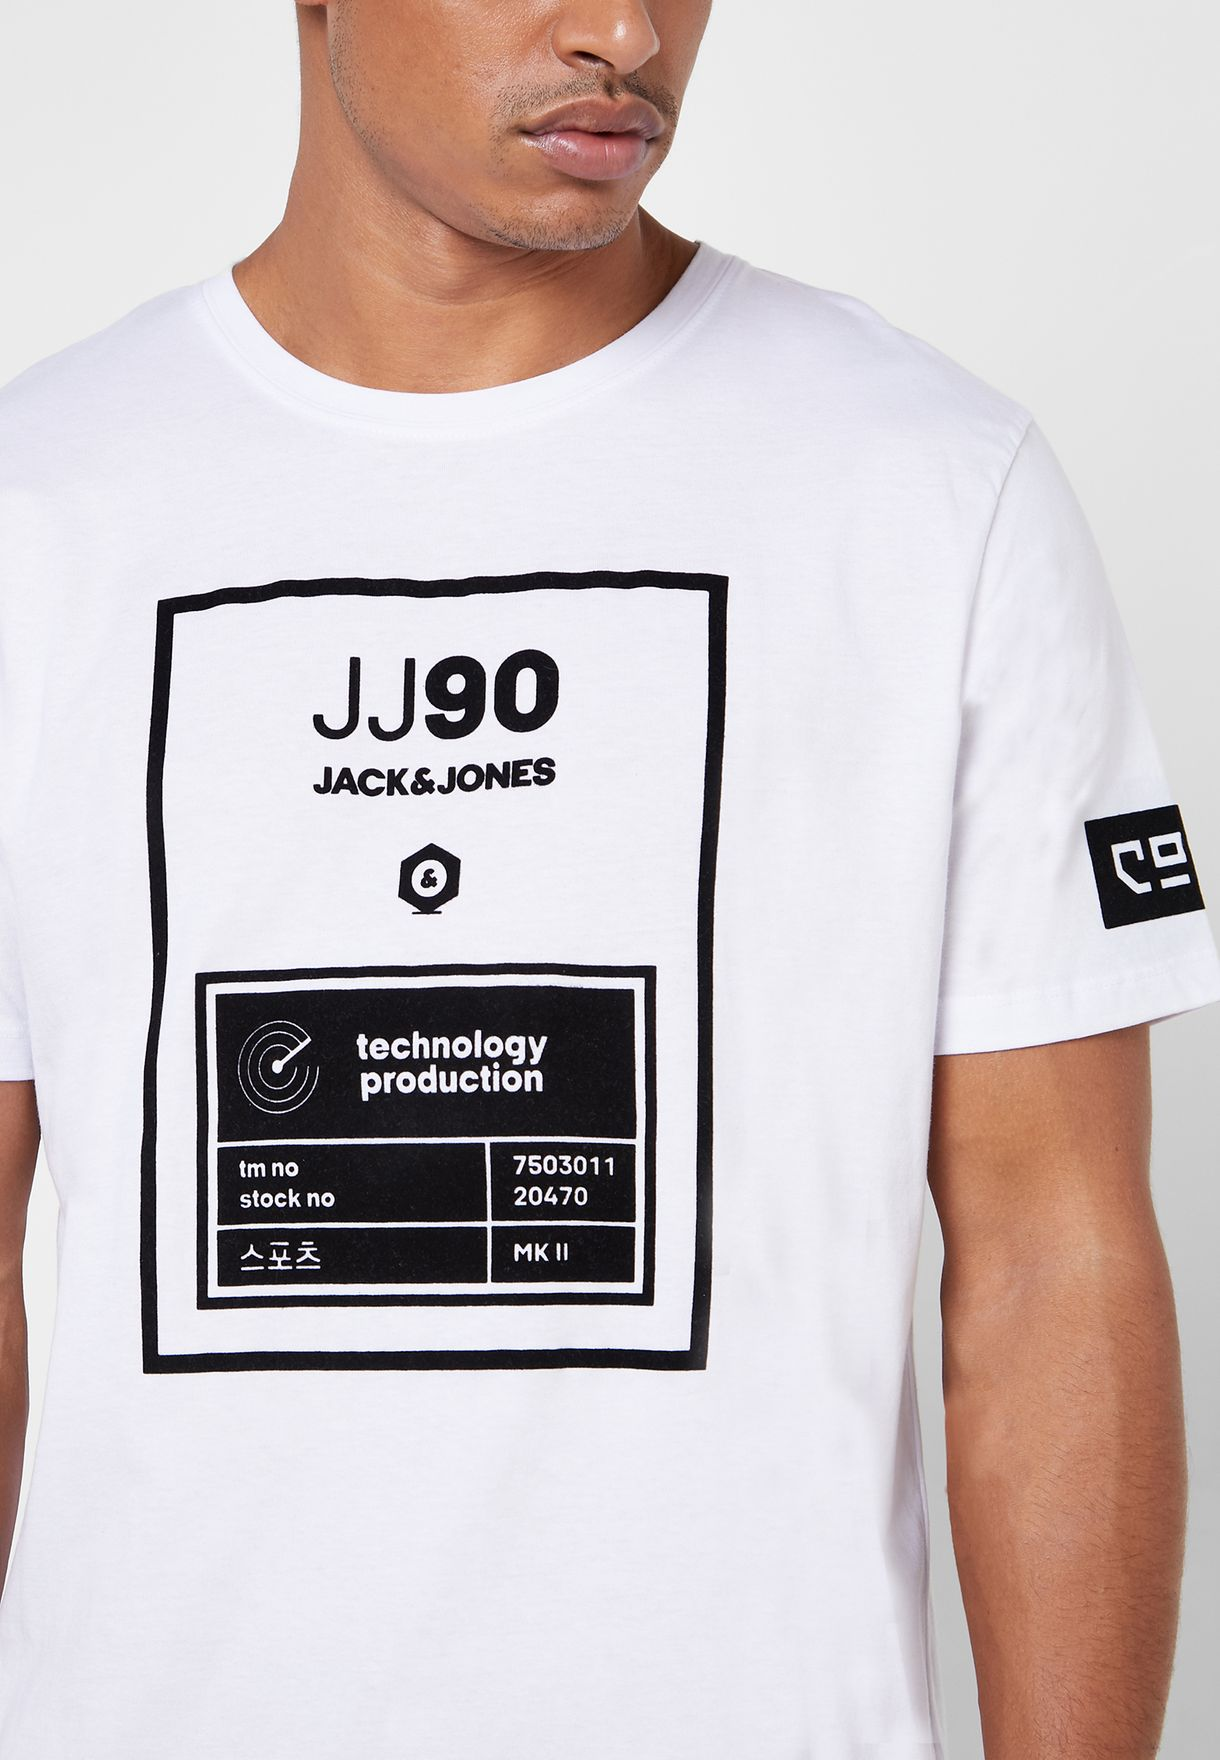 Jeepo Slim Fit Crew Neck T-Shirt